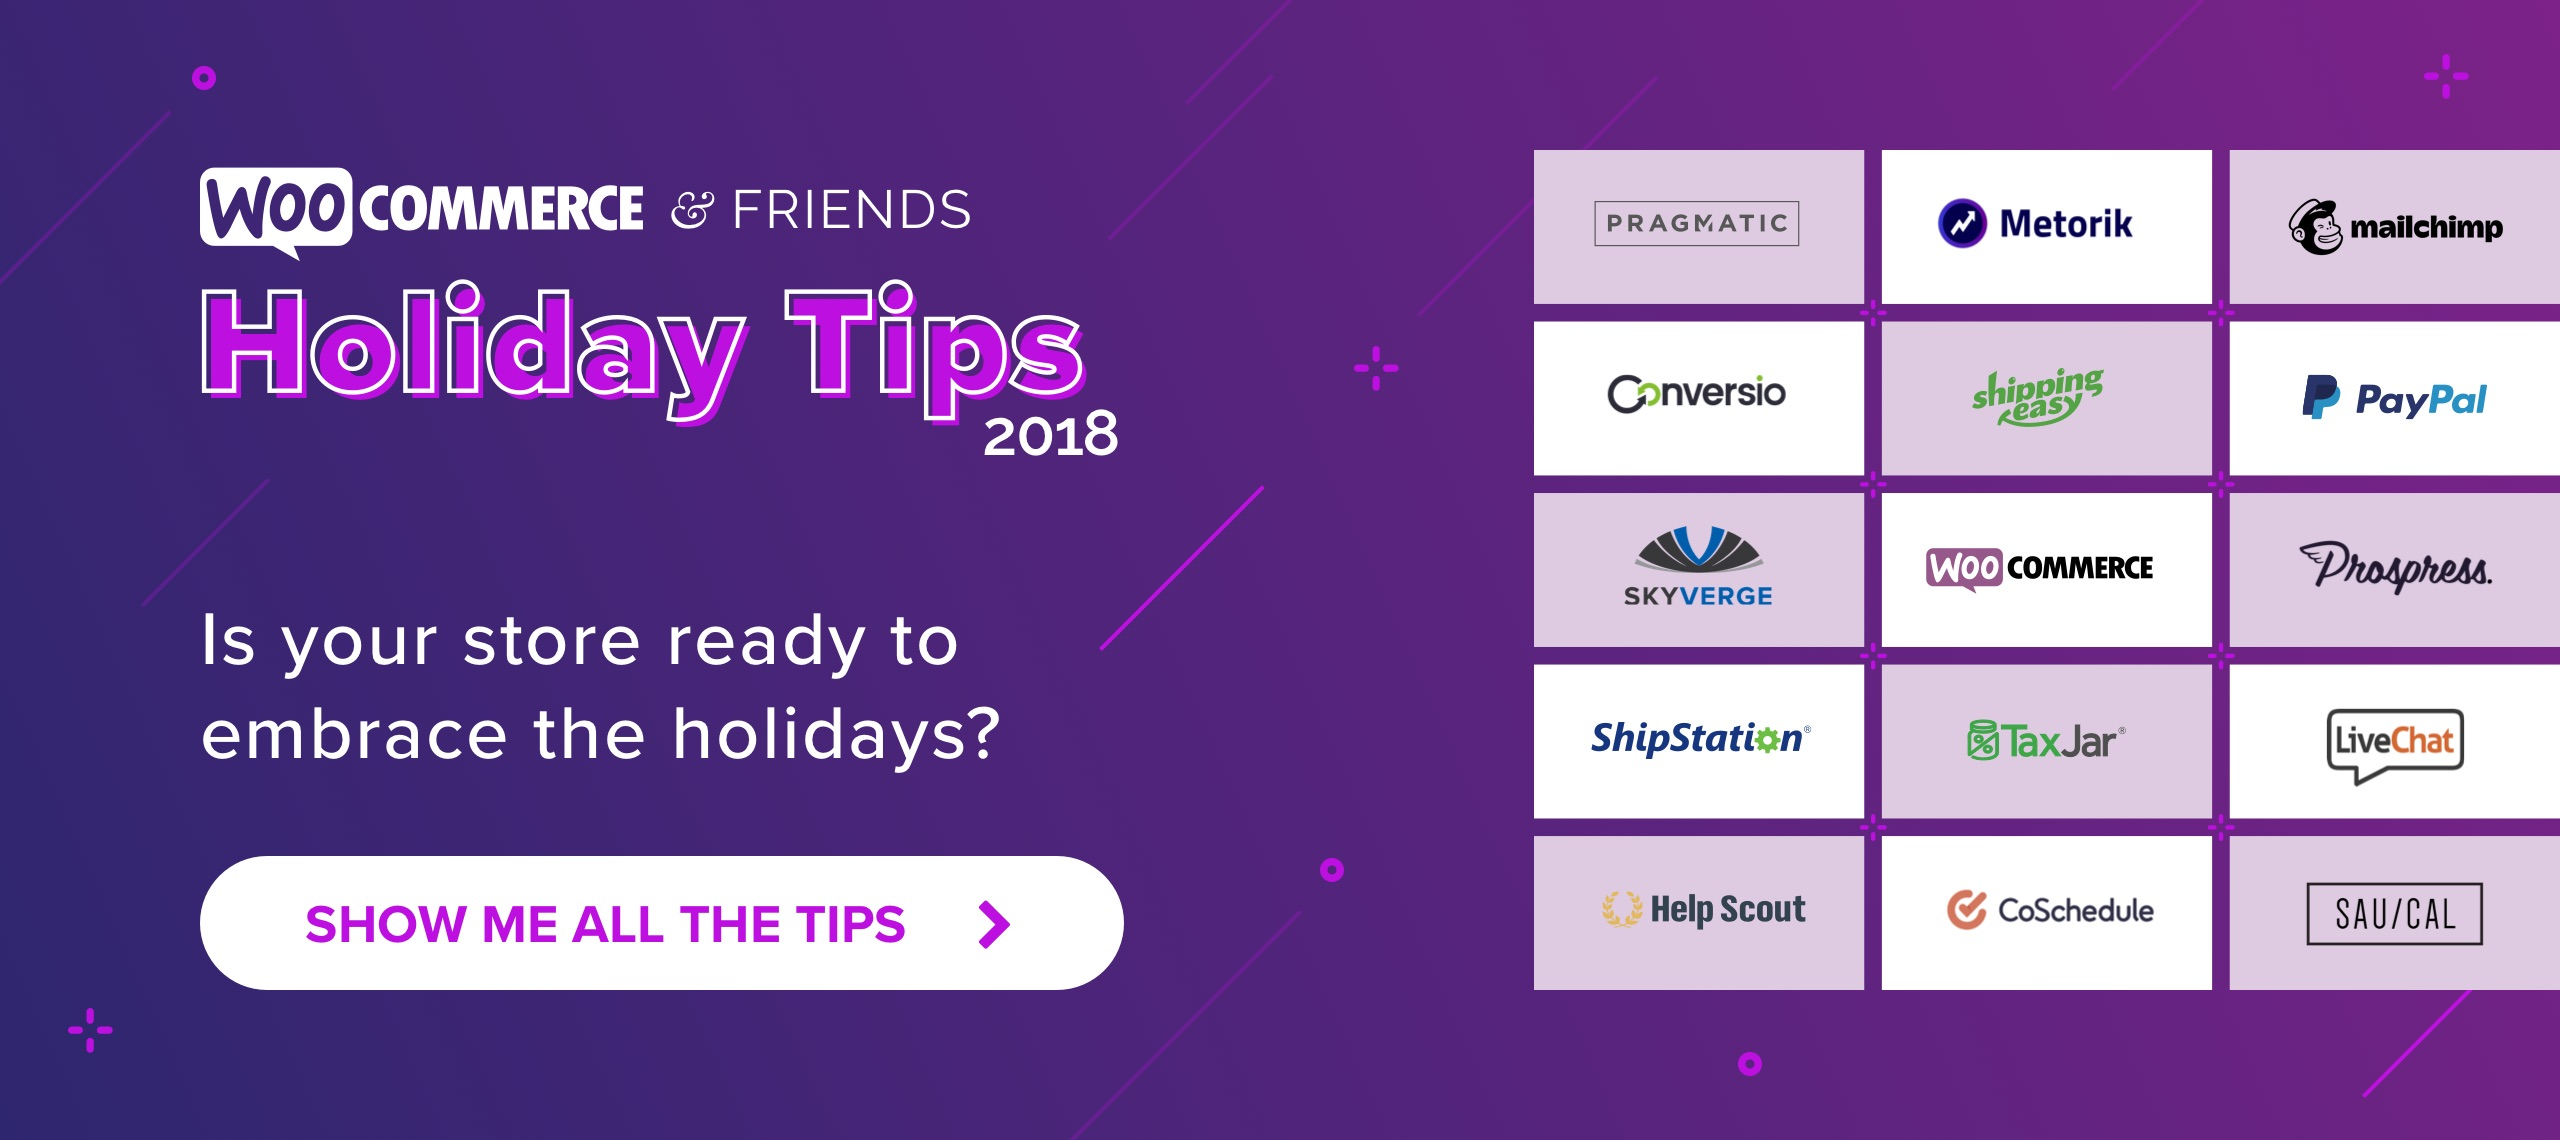 How to Prepare for Post-holiday Returns with ShipStation